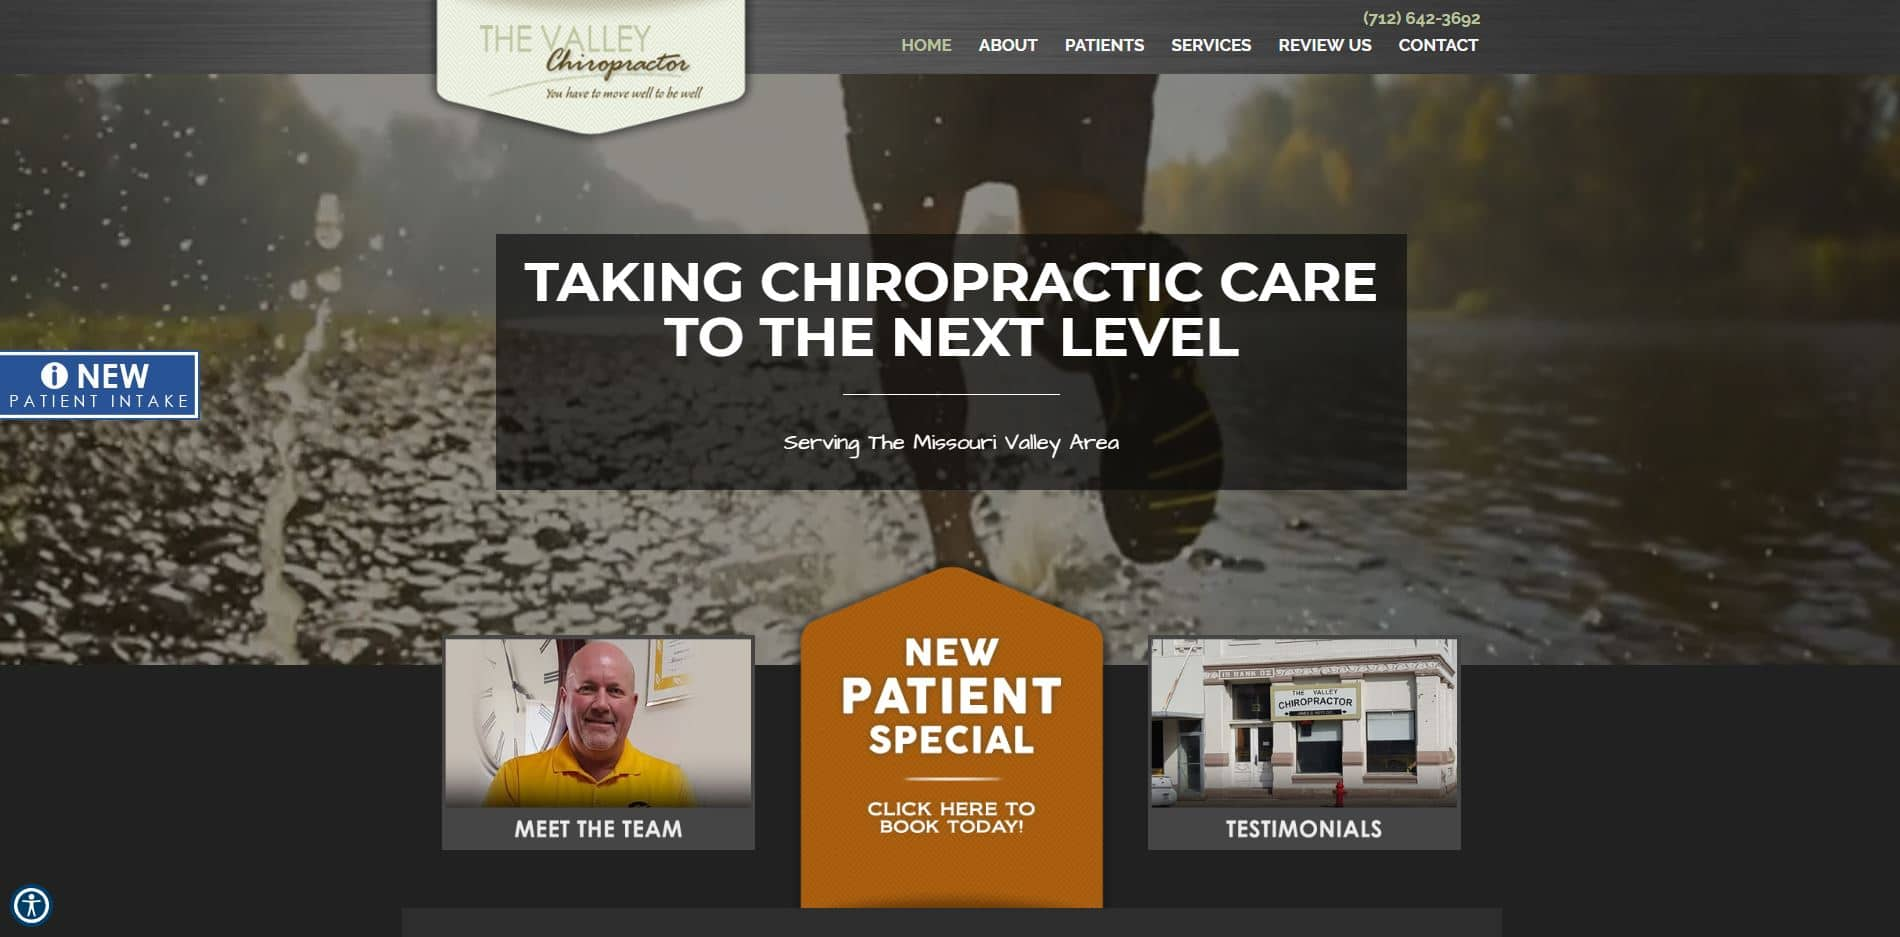 Chiropractor in Missouri Valley